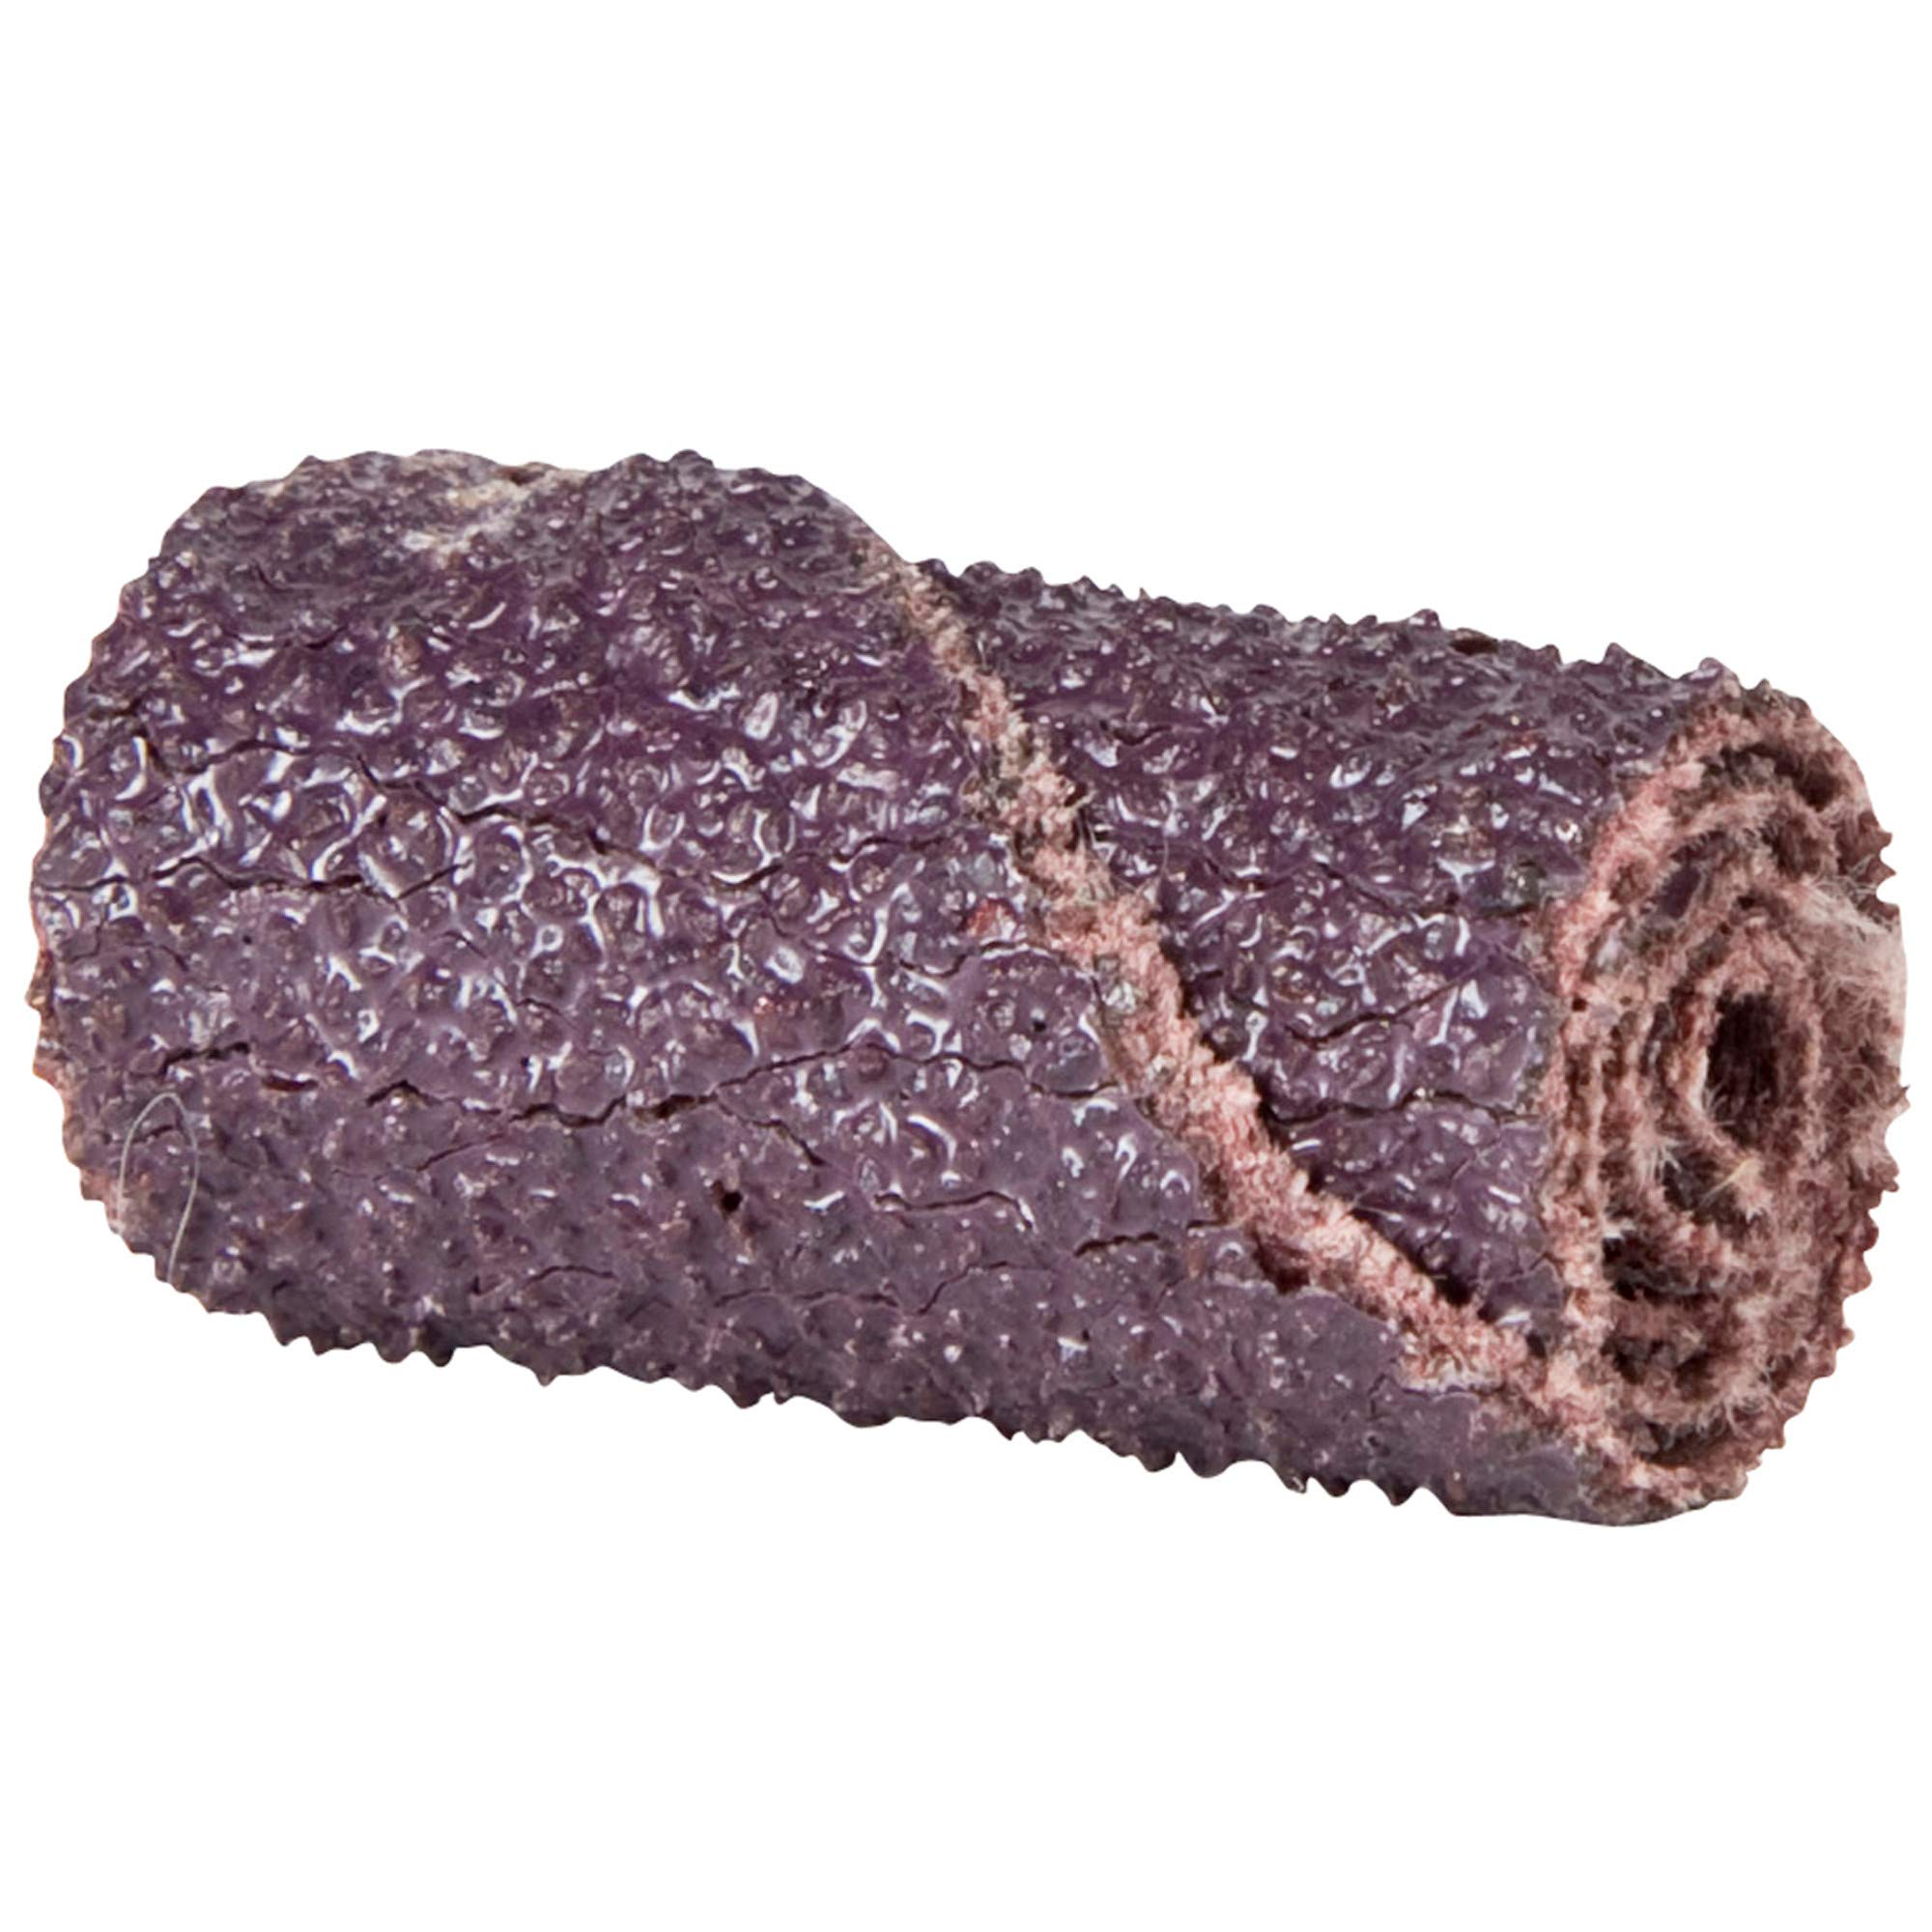 MERIT ABRASIVES 80310 1/2X1-1/2X1/8 120 Grit Cartridge Roll-Alo Re (Price is for 100 Each/Box)